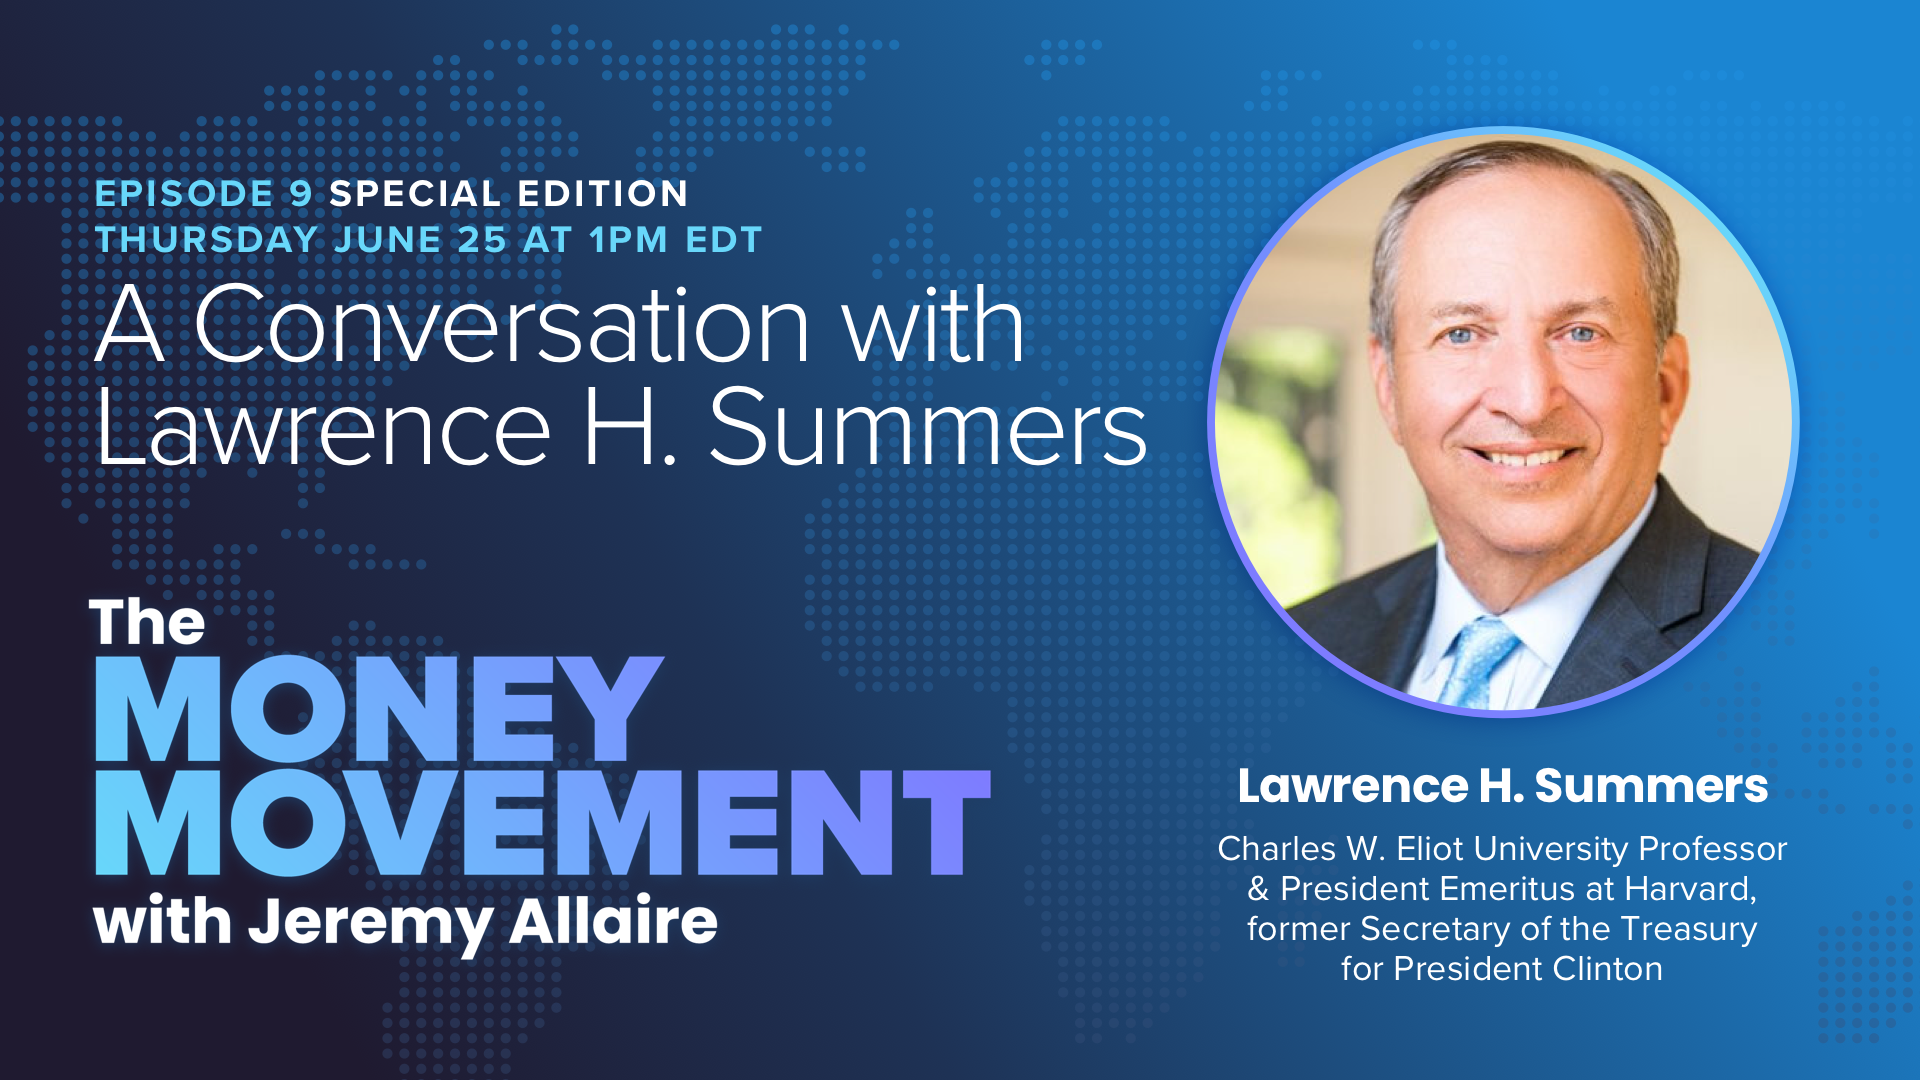 Episode 9 Special Edition: A Conversation with Lawrence H. Summers